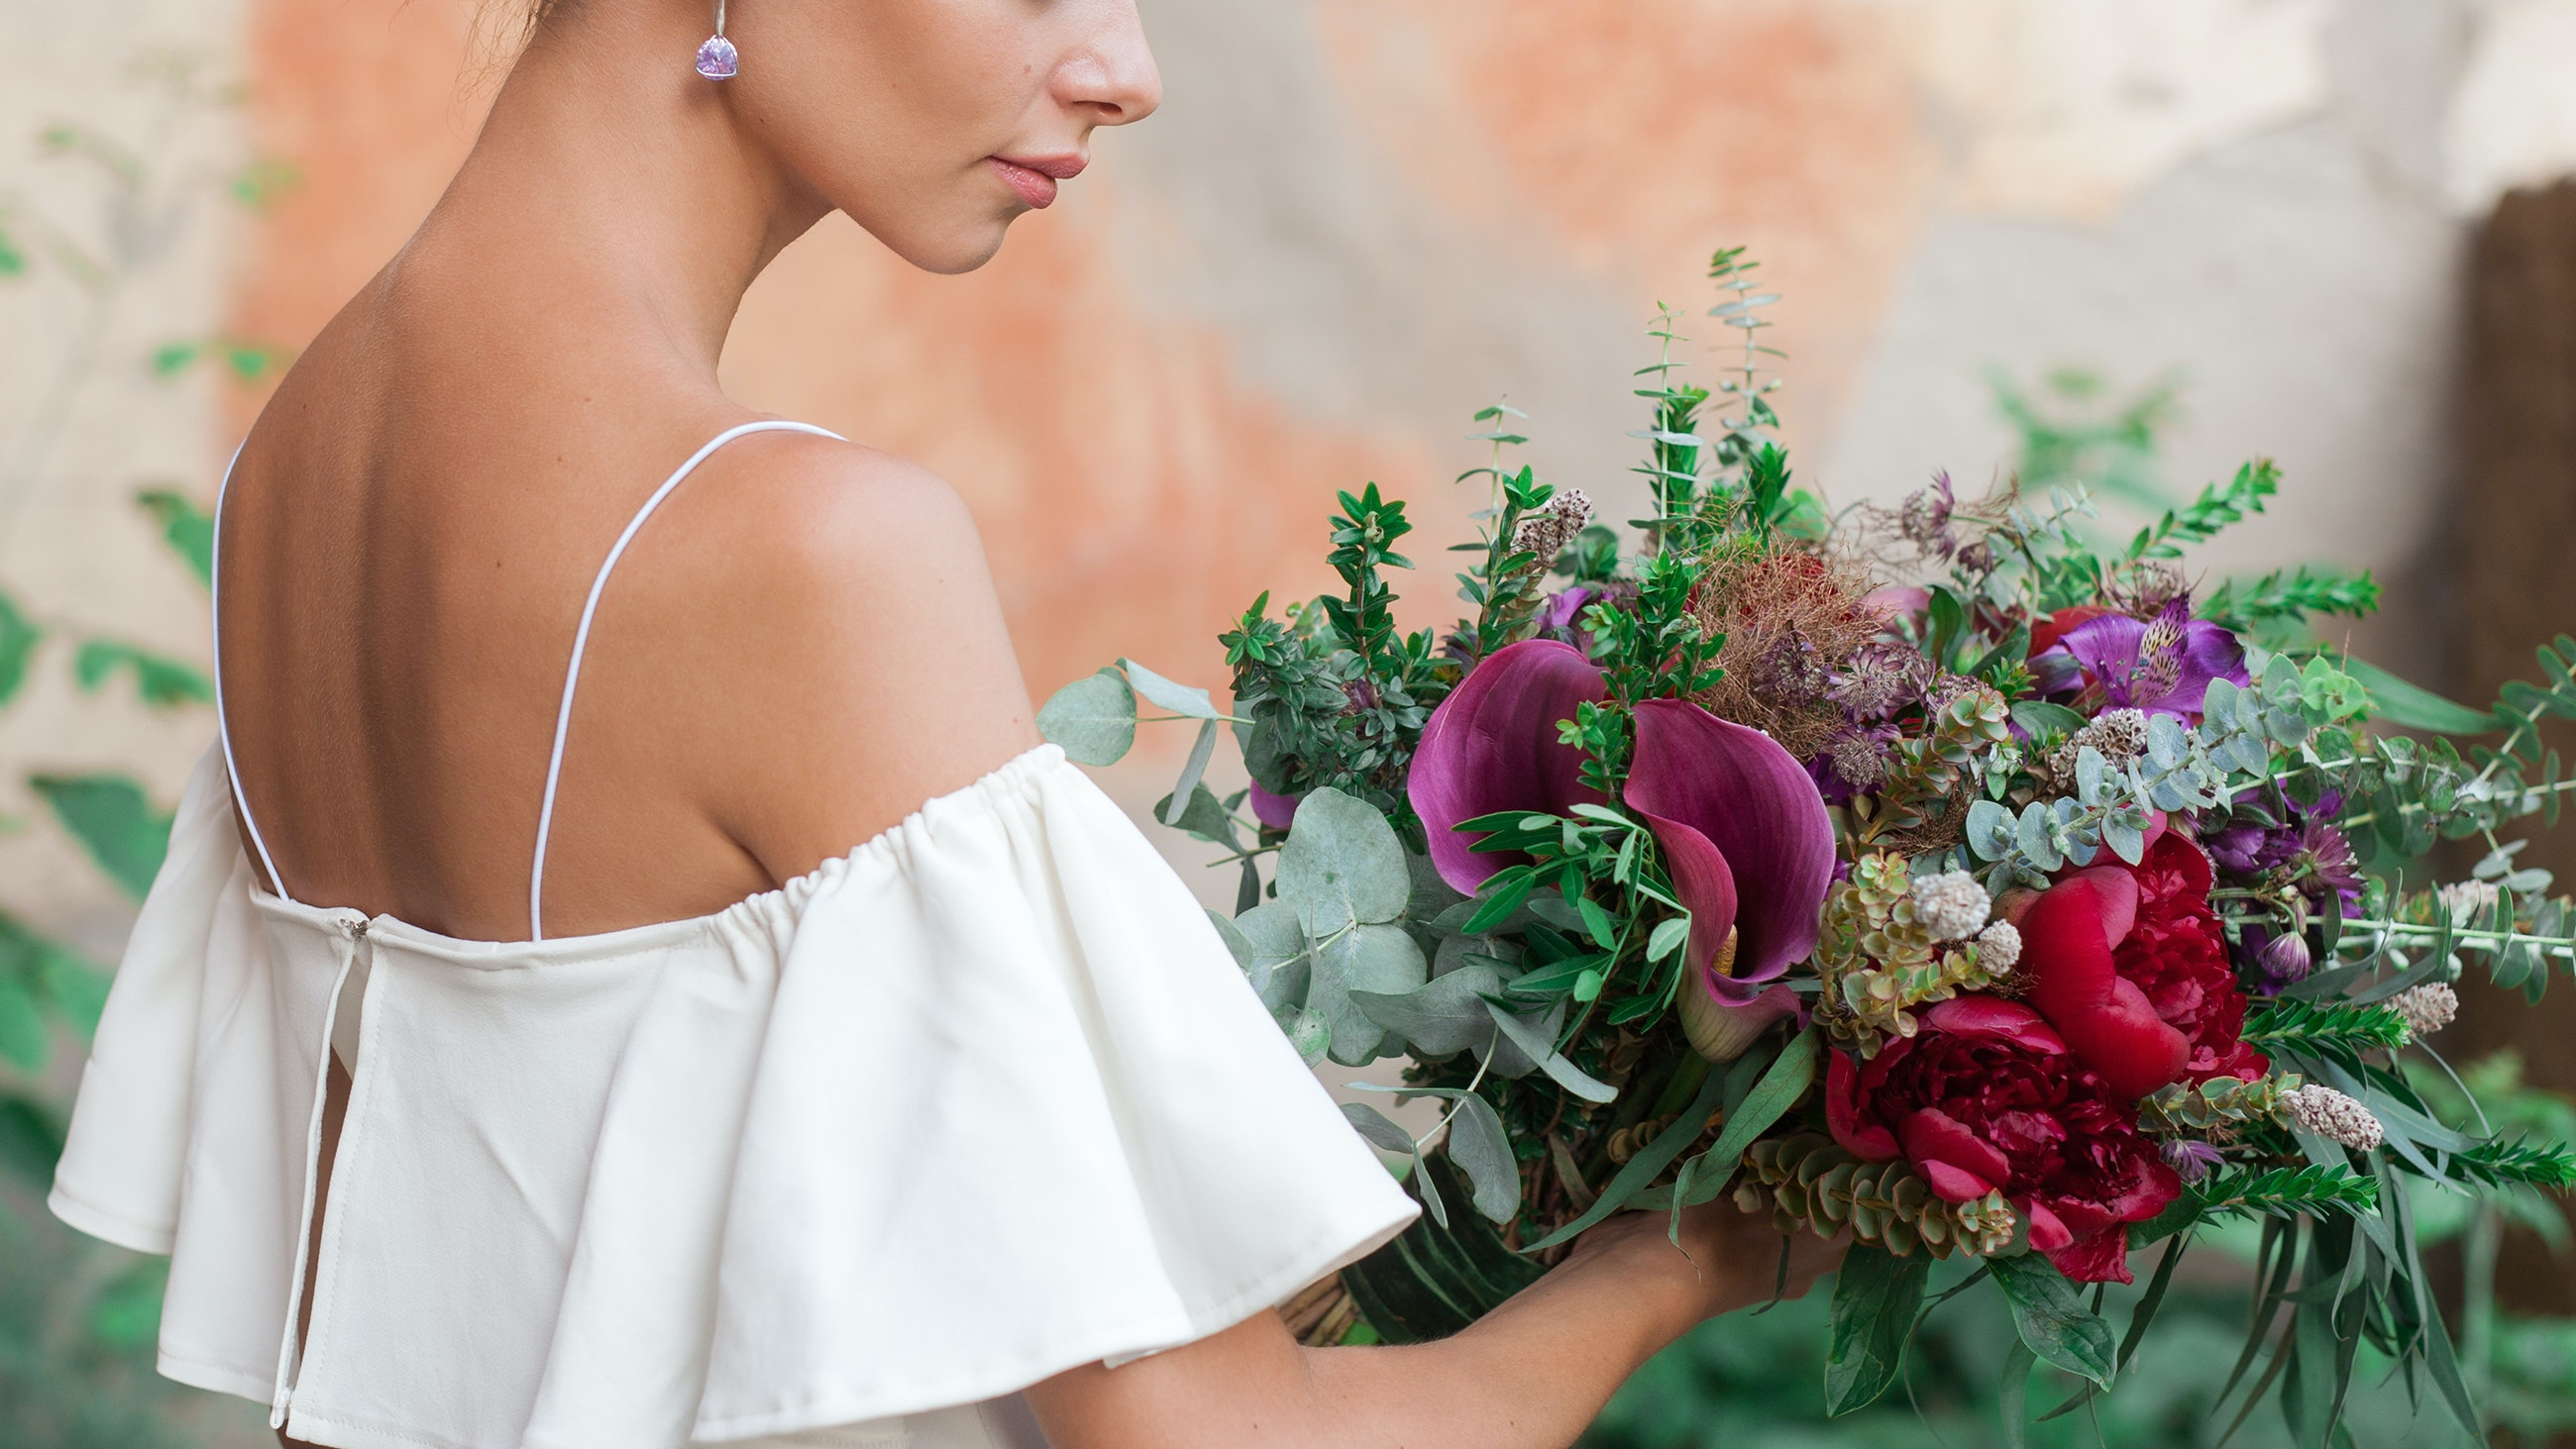 Exactly When to Get Injectable Wrinkle Reducers Before Your Wedding